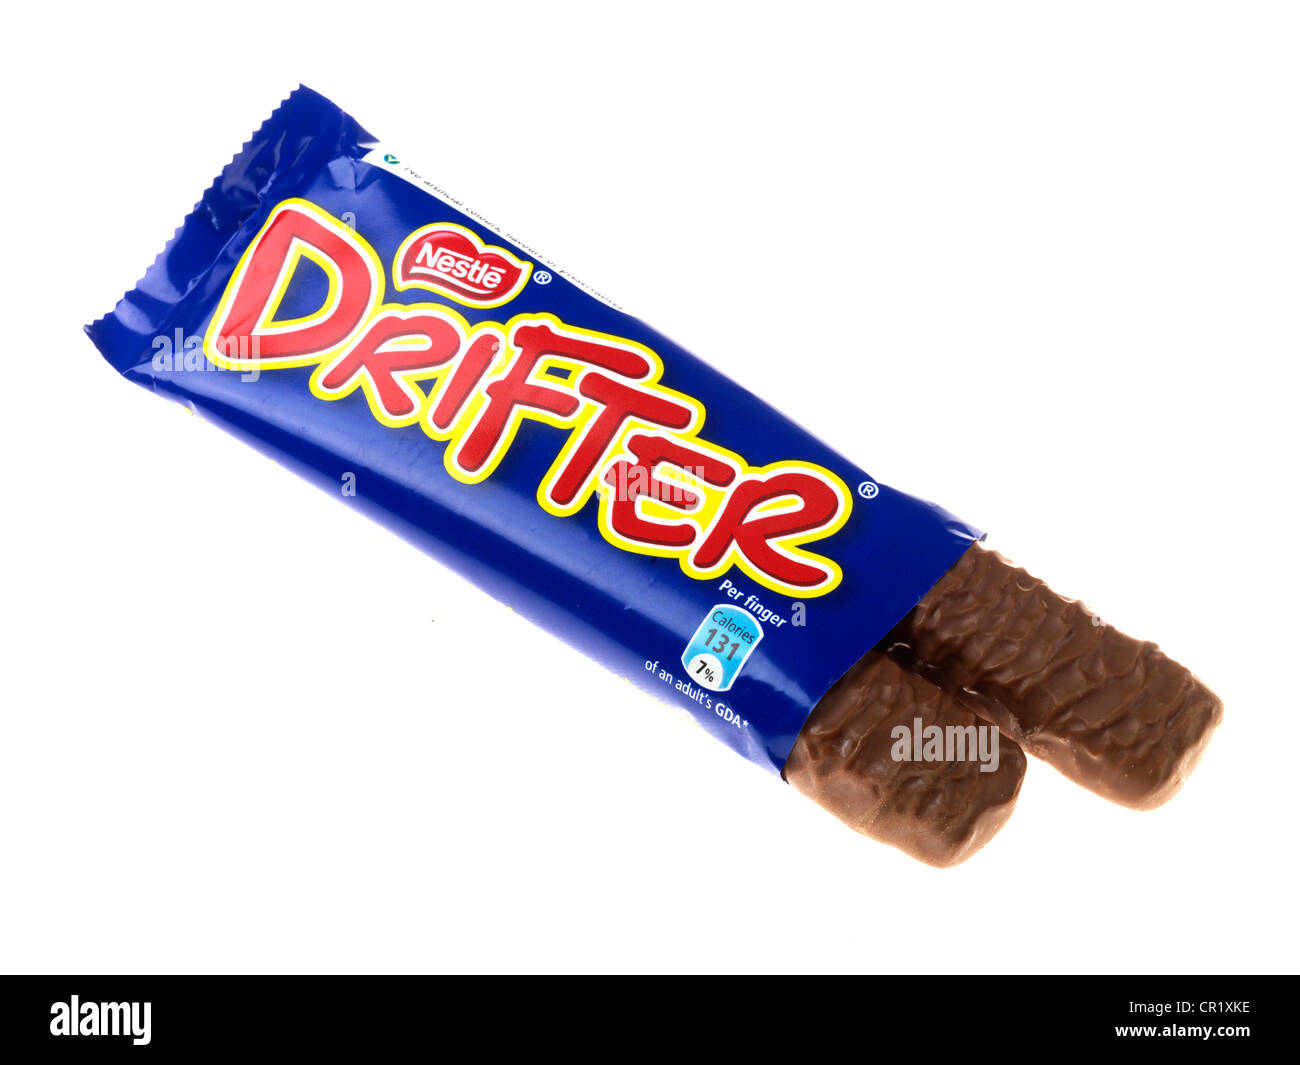 Drifter Chocolate Fingers - Stock Image